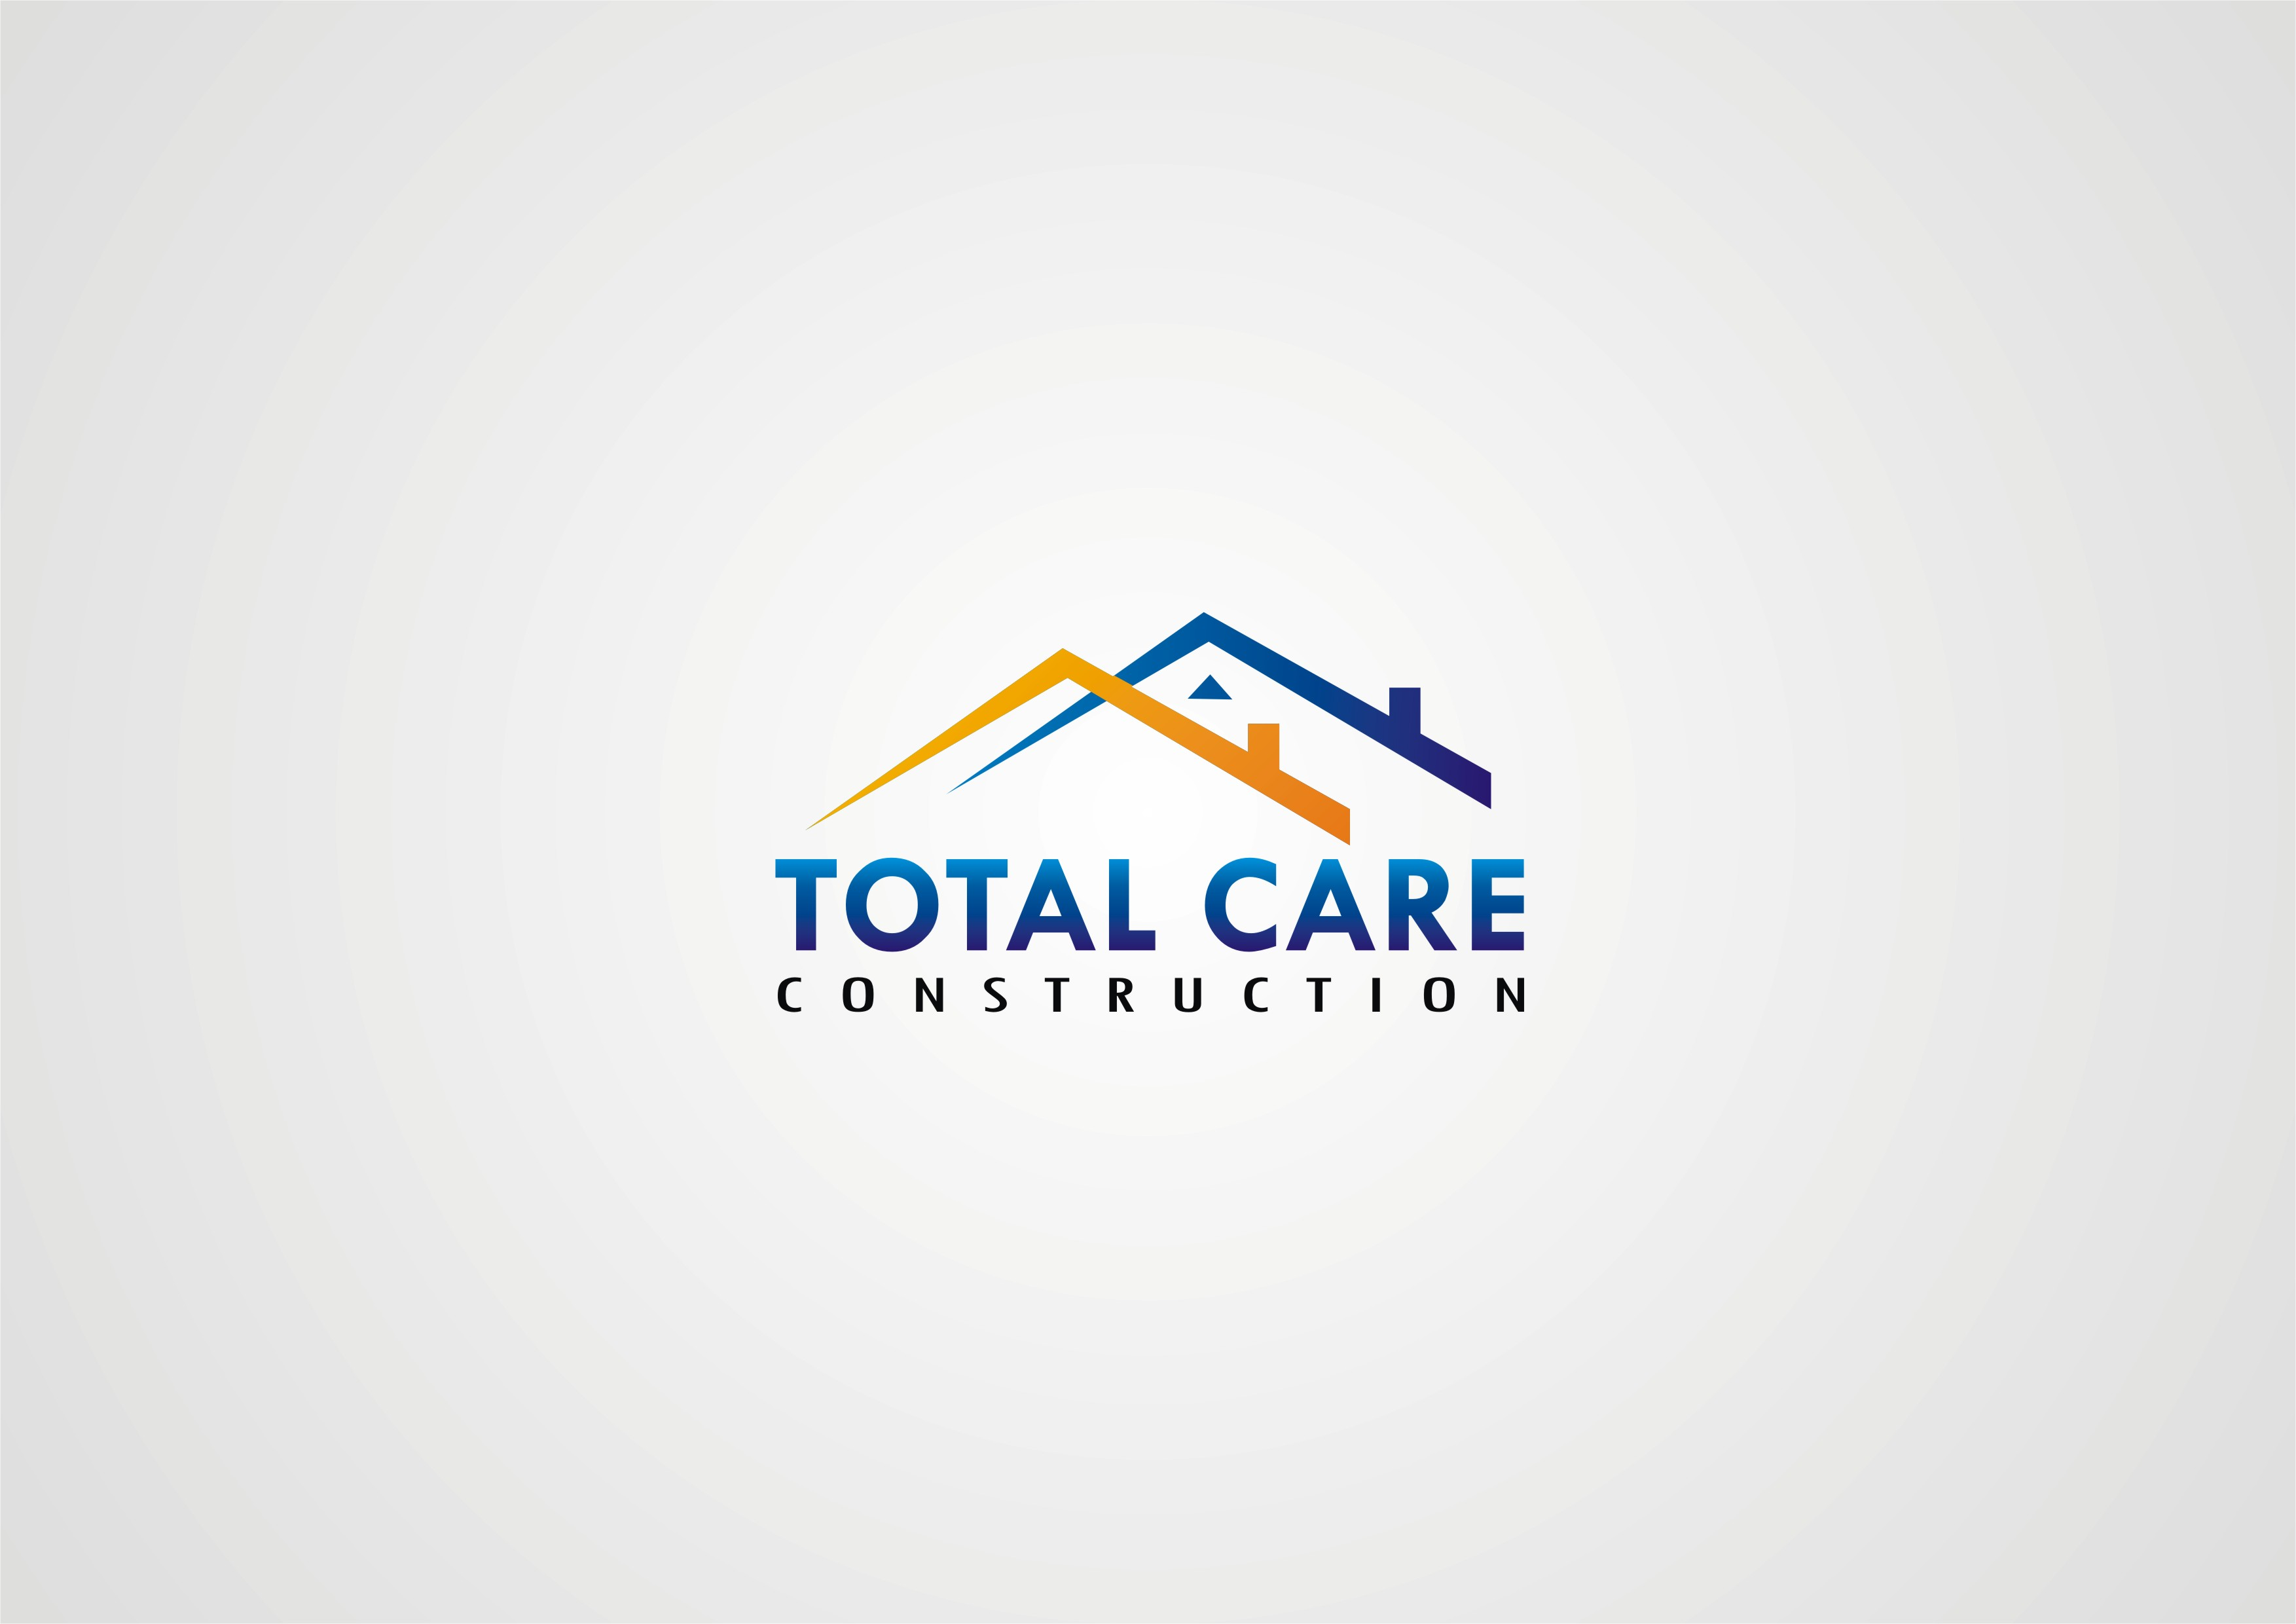 Construction business logo ideas the for Design company